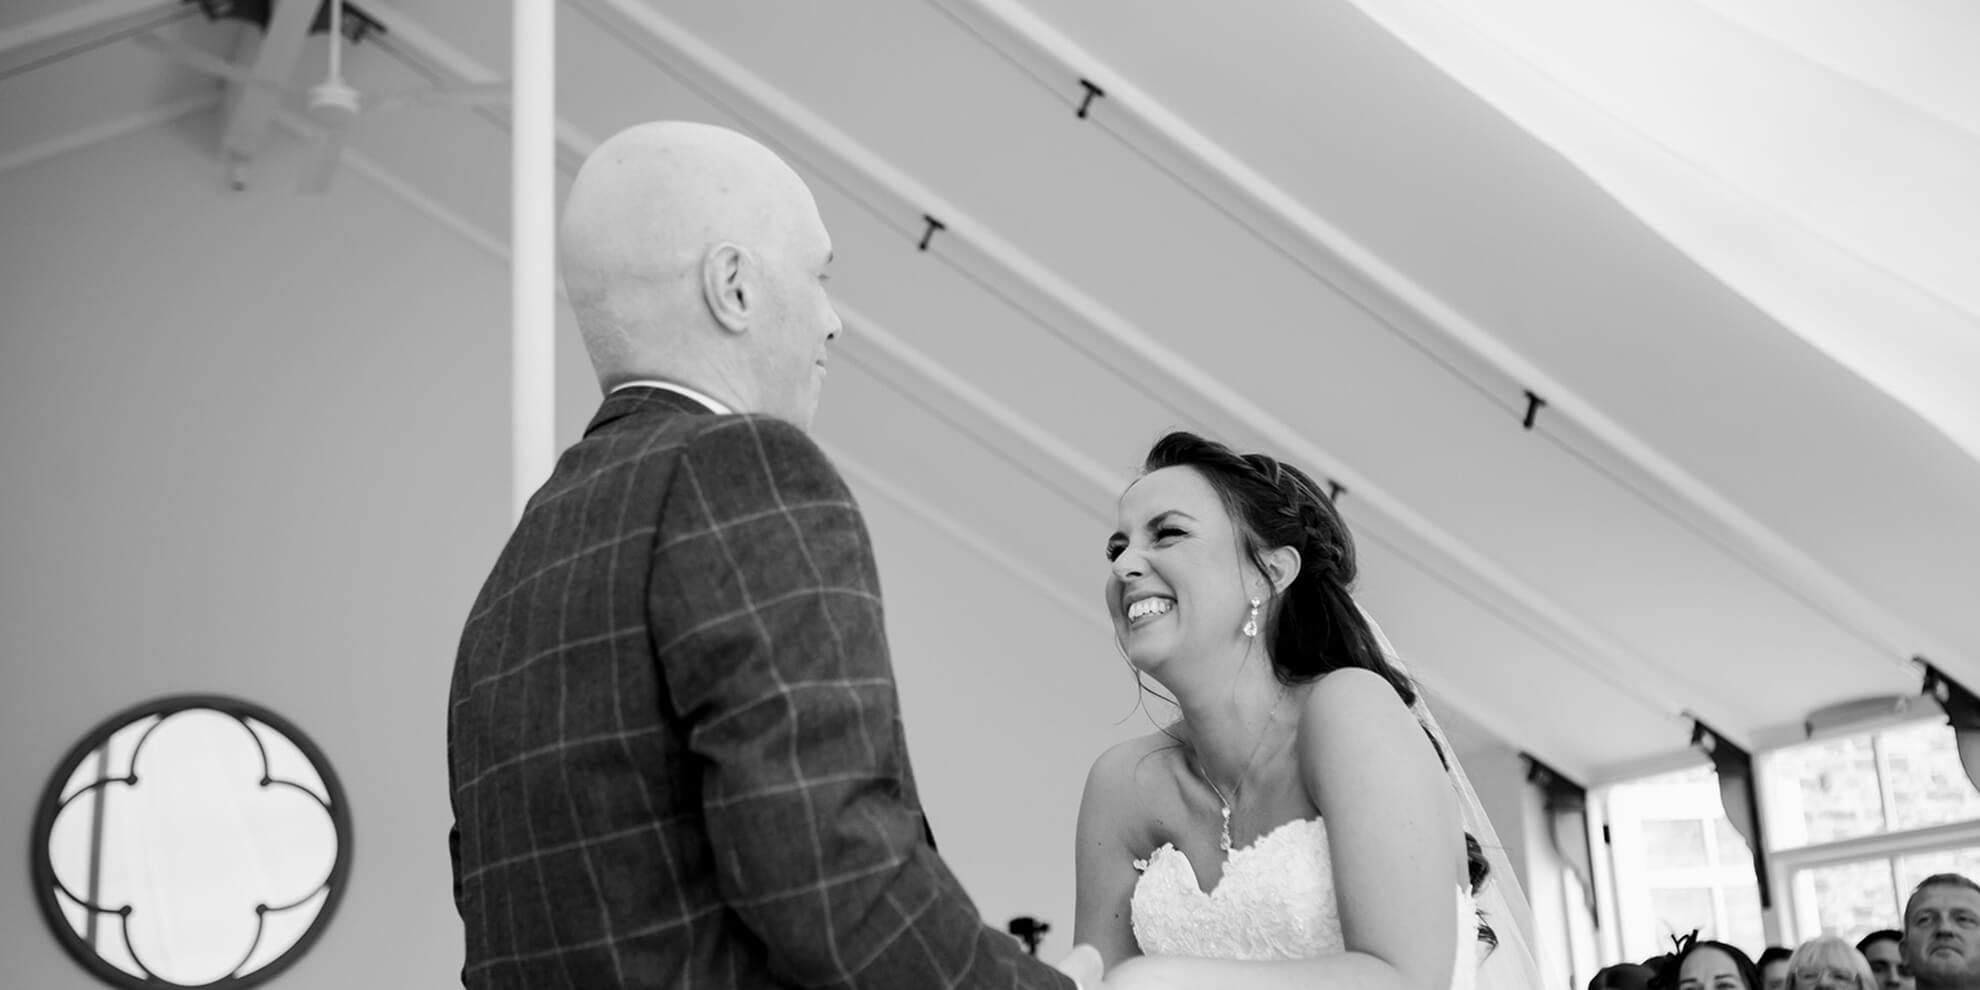 The excited couple exchange marriage vows in the Glasshouse – wedding ceremony venues Cheshire